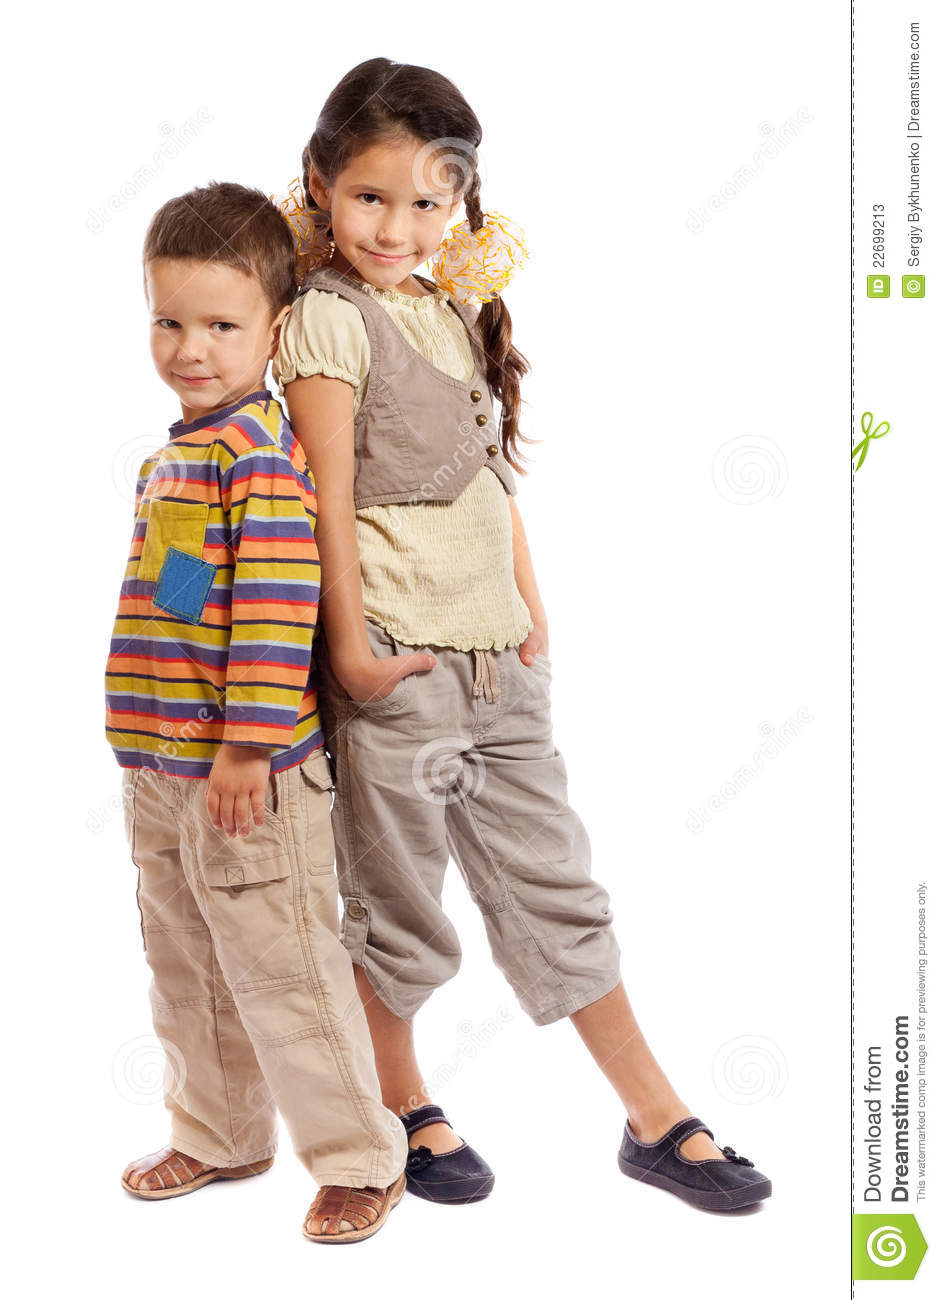 Two Smiling Little Children Standing Together Stock Photos ...